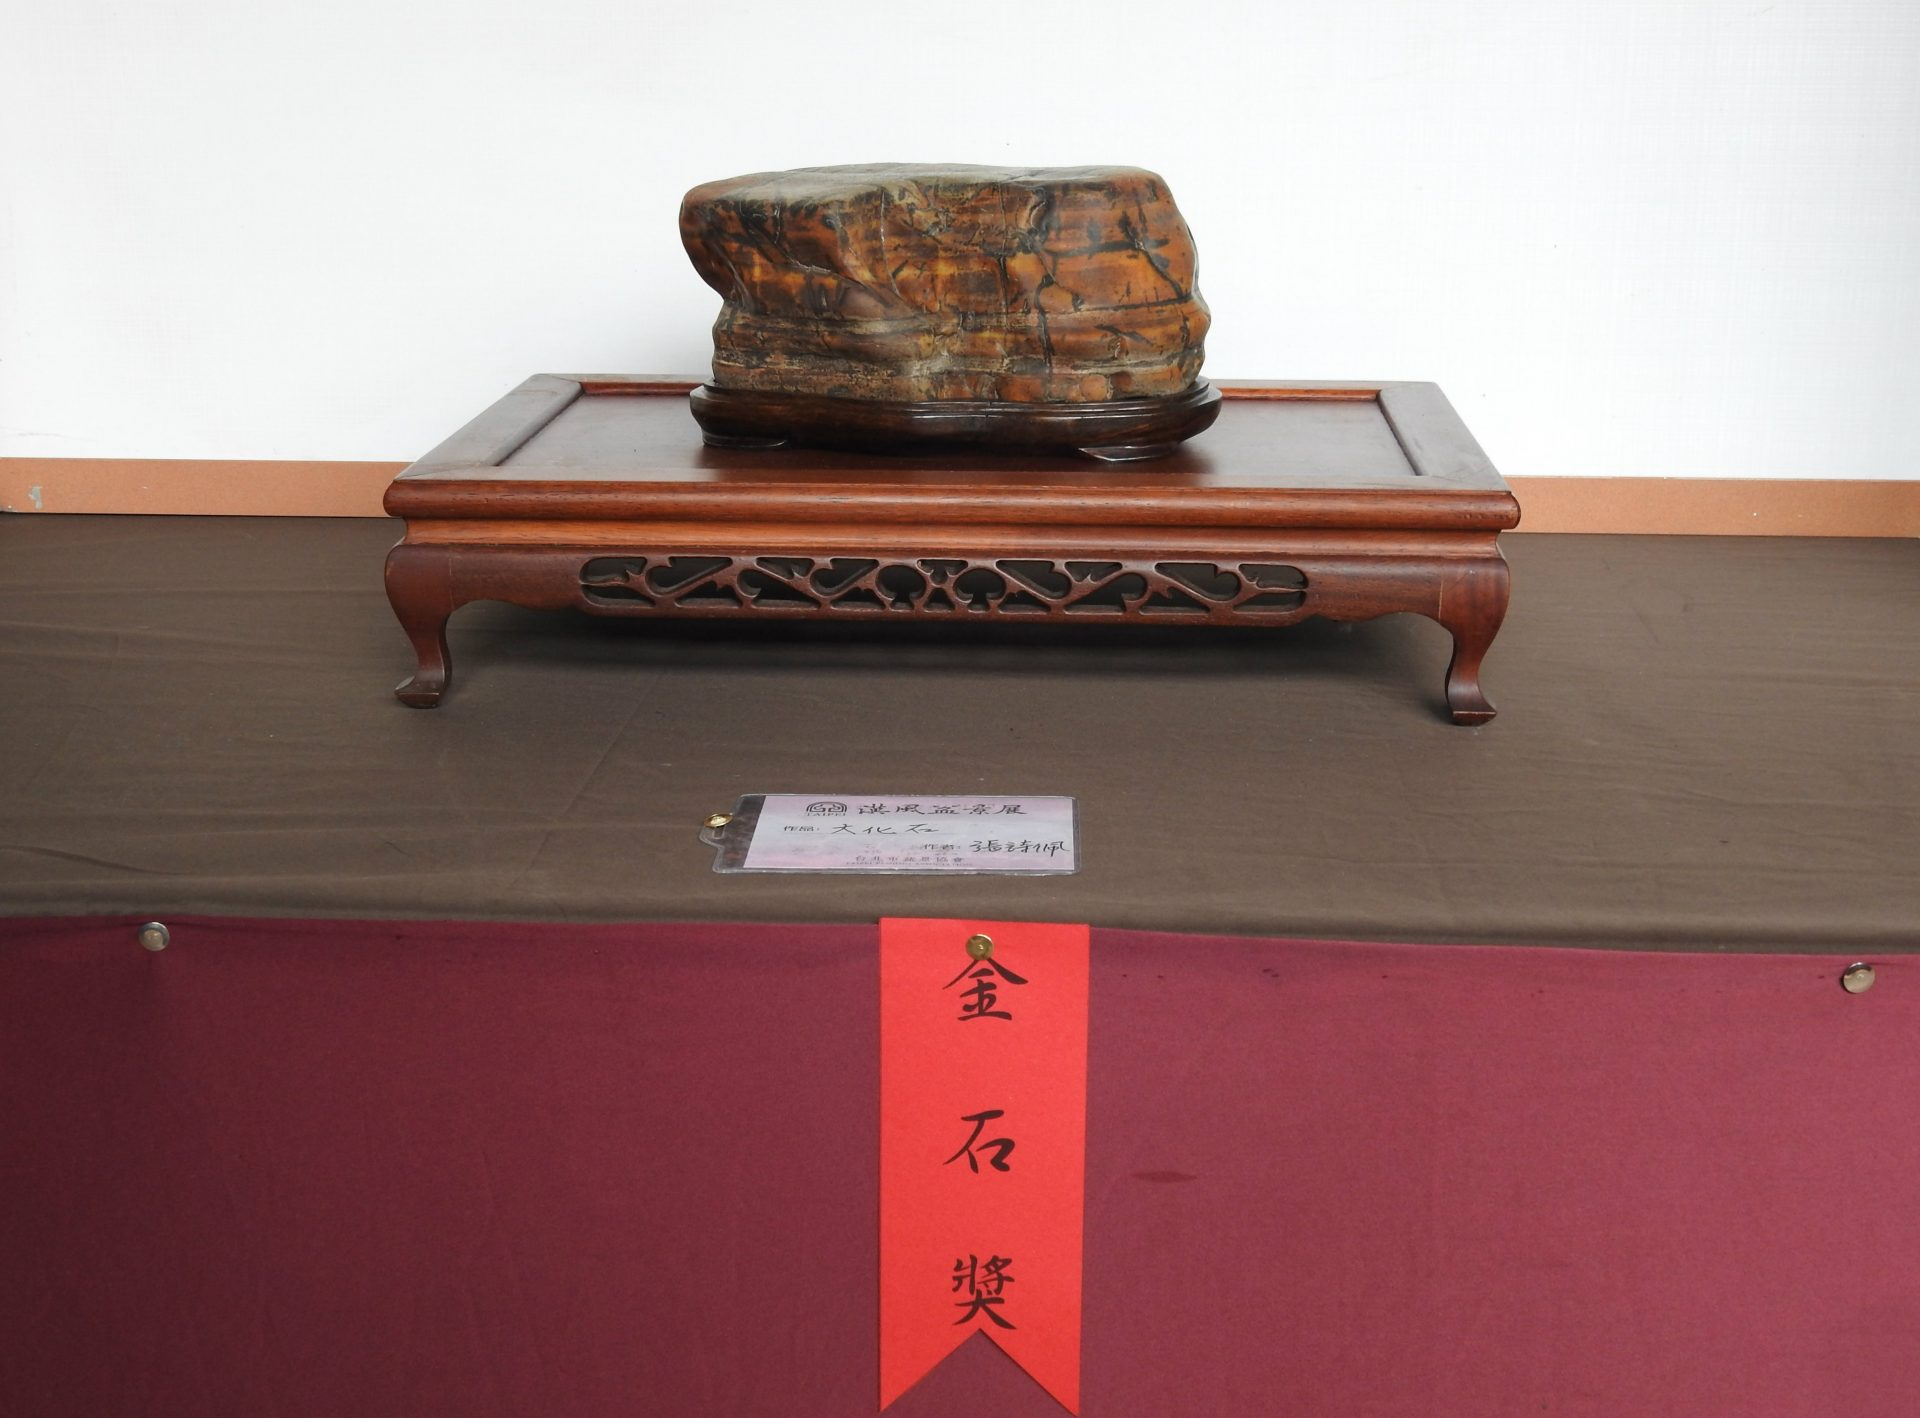 One of the gold award-winning stones at the 2017 Han Feng Bonsai Exposition (Image: Billy Shyu/ Vision Times)